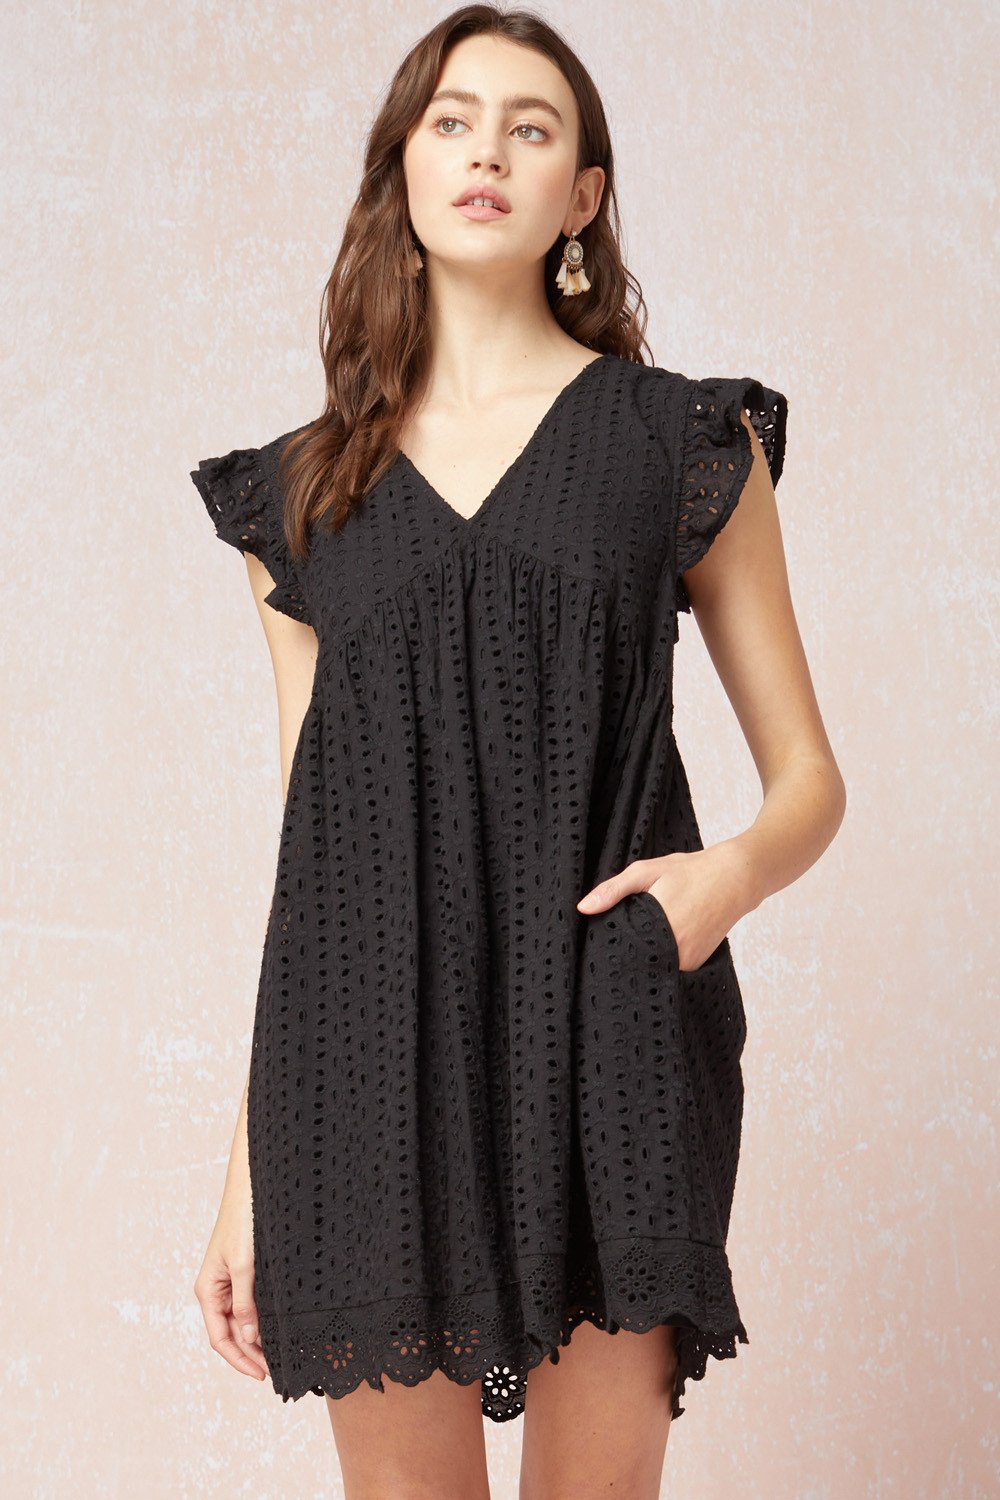 ENTRO INC Women's Dress Crochet Eyelet Ruffle Sleeve Babydoll Dress || David's Clothing